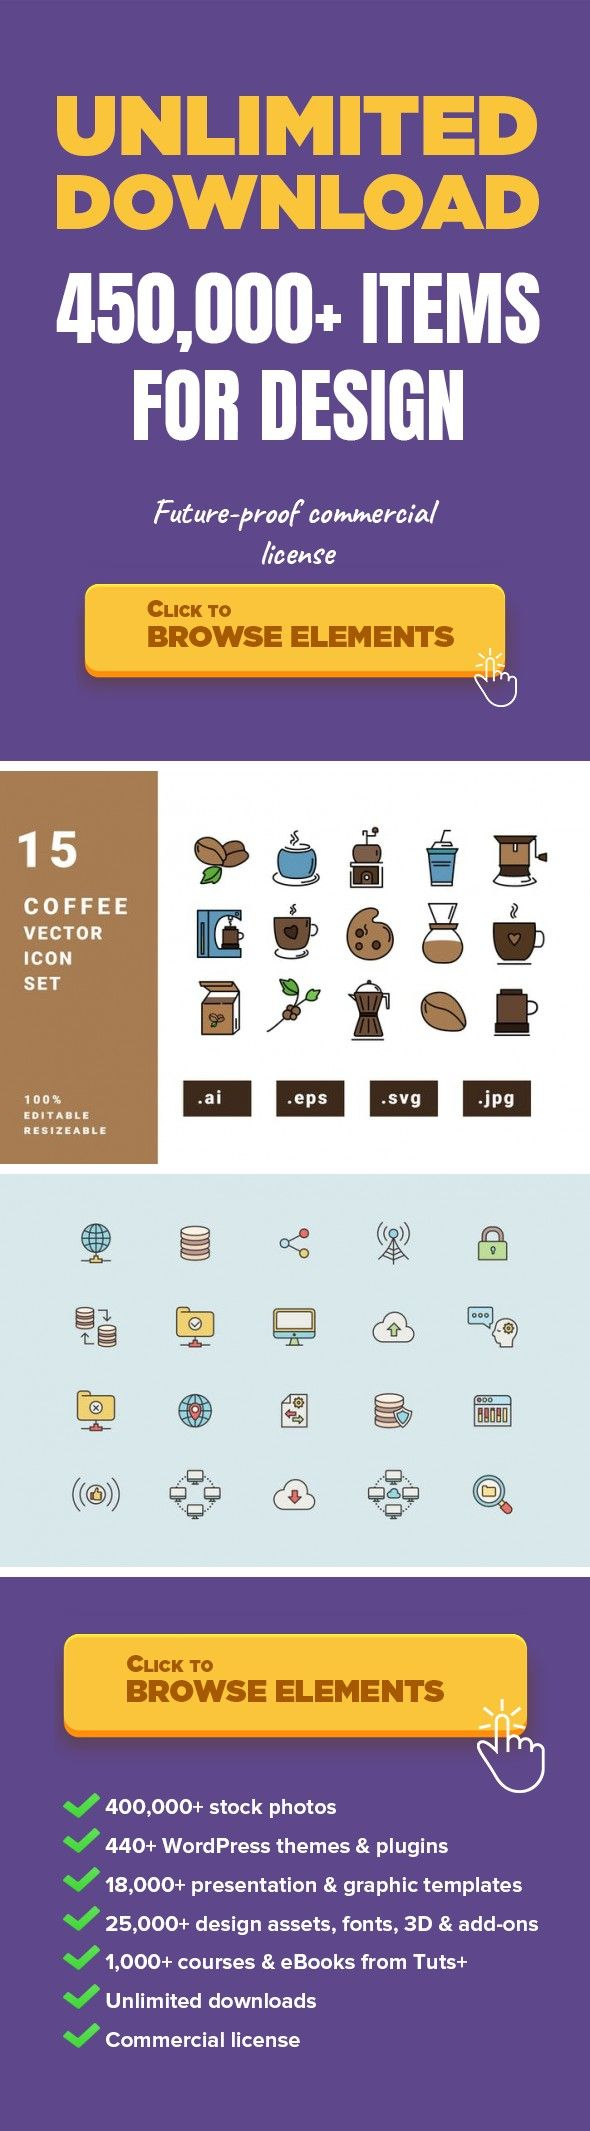 50 Office Flat Multicolor Icons Graphics, Icons office, file, icon, folder, calendar, telephone, briefcase, identity, card, tea, report, clock, chat, bubble, board   50 Office Flat Multicolor IconsSuitable for: Mobile Apps, Websites, Print, Presentation, Illustration, TemplatesFeatures: Ready to use for all devices and platforms 6 Different formats: AI, CDR, EPS, JPG, PNG, SVG Designed using unigr...